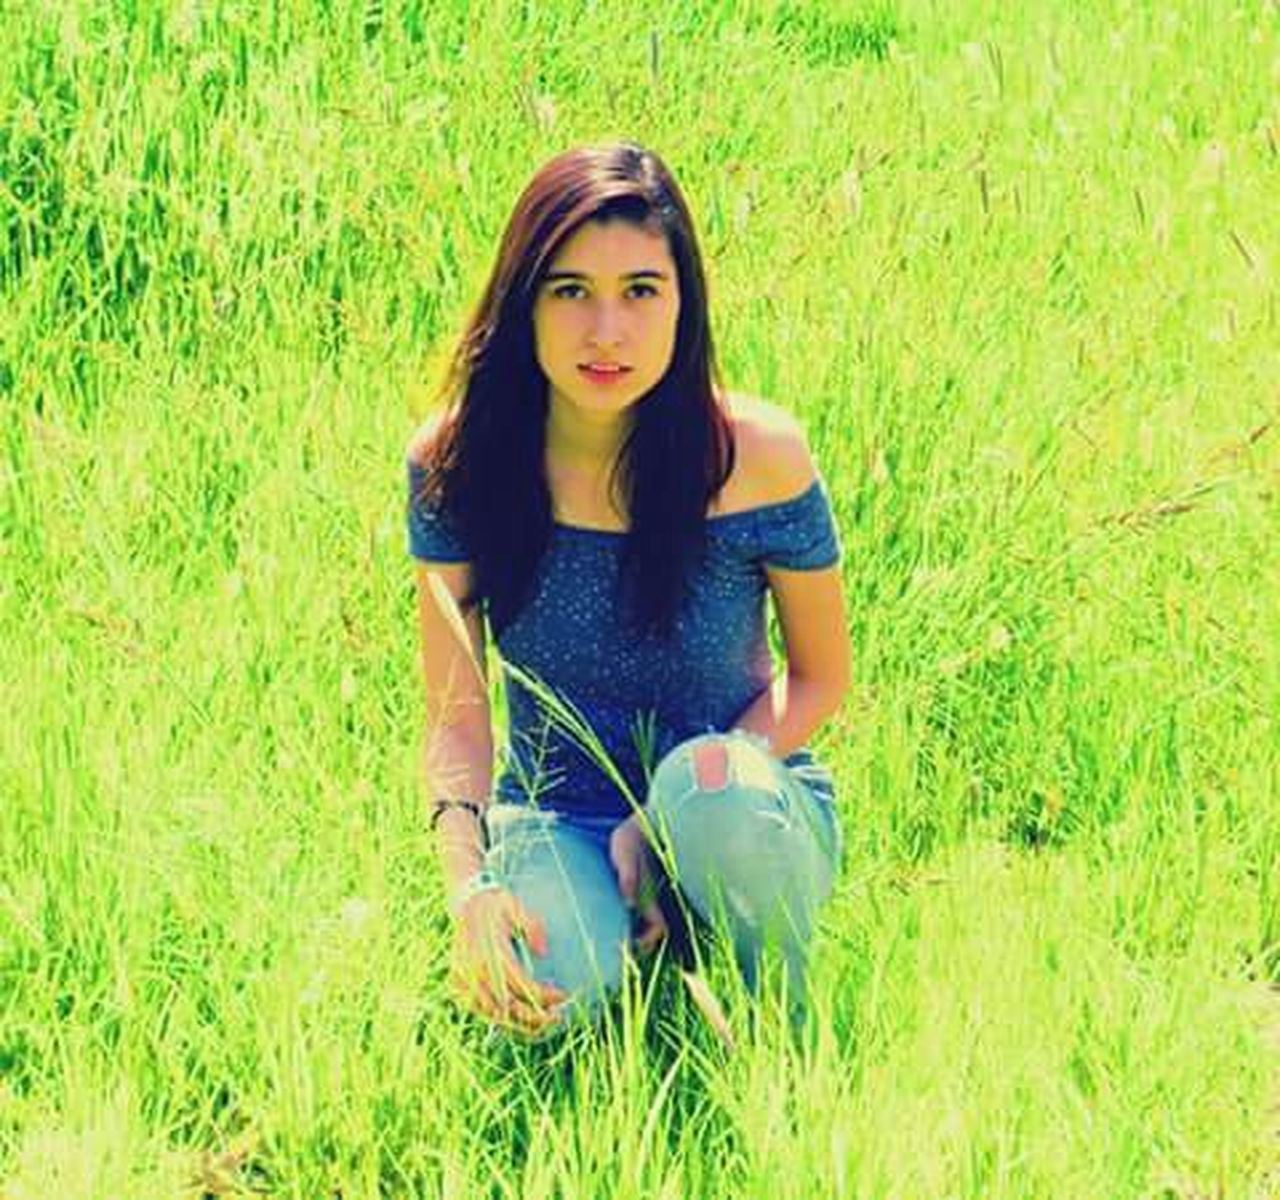 grass, looking at camera, one person, portrait, front view, casual clothing, beautiful woman, green color, growth, long hair, outdoors, standing, young adult, day, nature, beauty, leisure activity, only women, people, one young woman only, real people, adults only, one woman only, beautiful people, adult, young women, beauty in nature, flower, freshness